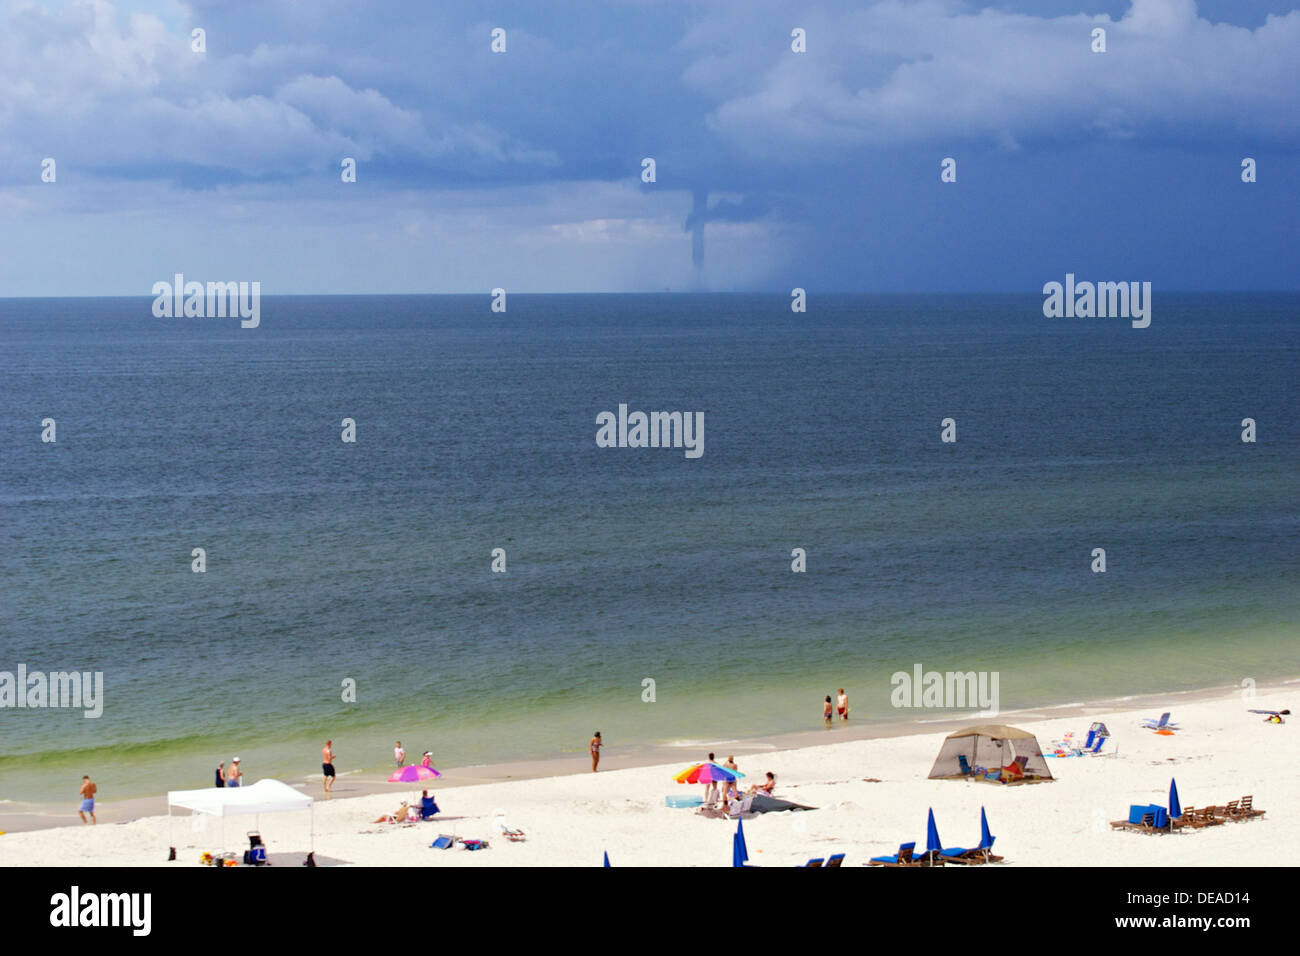 water cyclone forming in the Atlantic ocean with people on beach watching Stock Photo